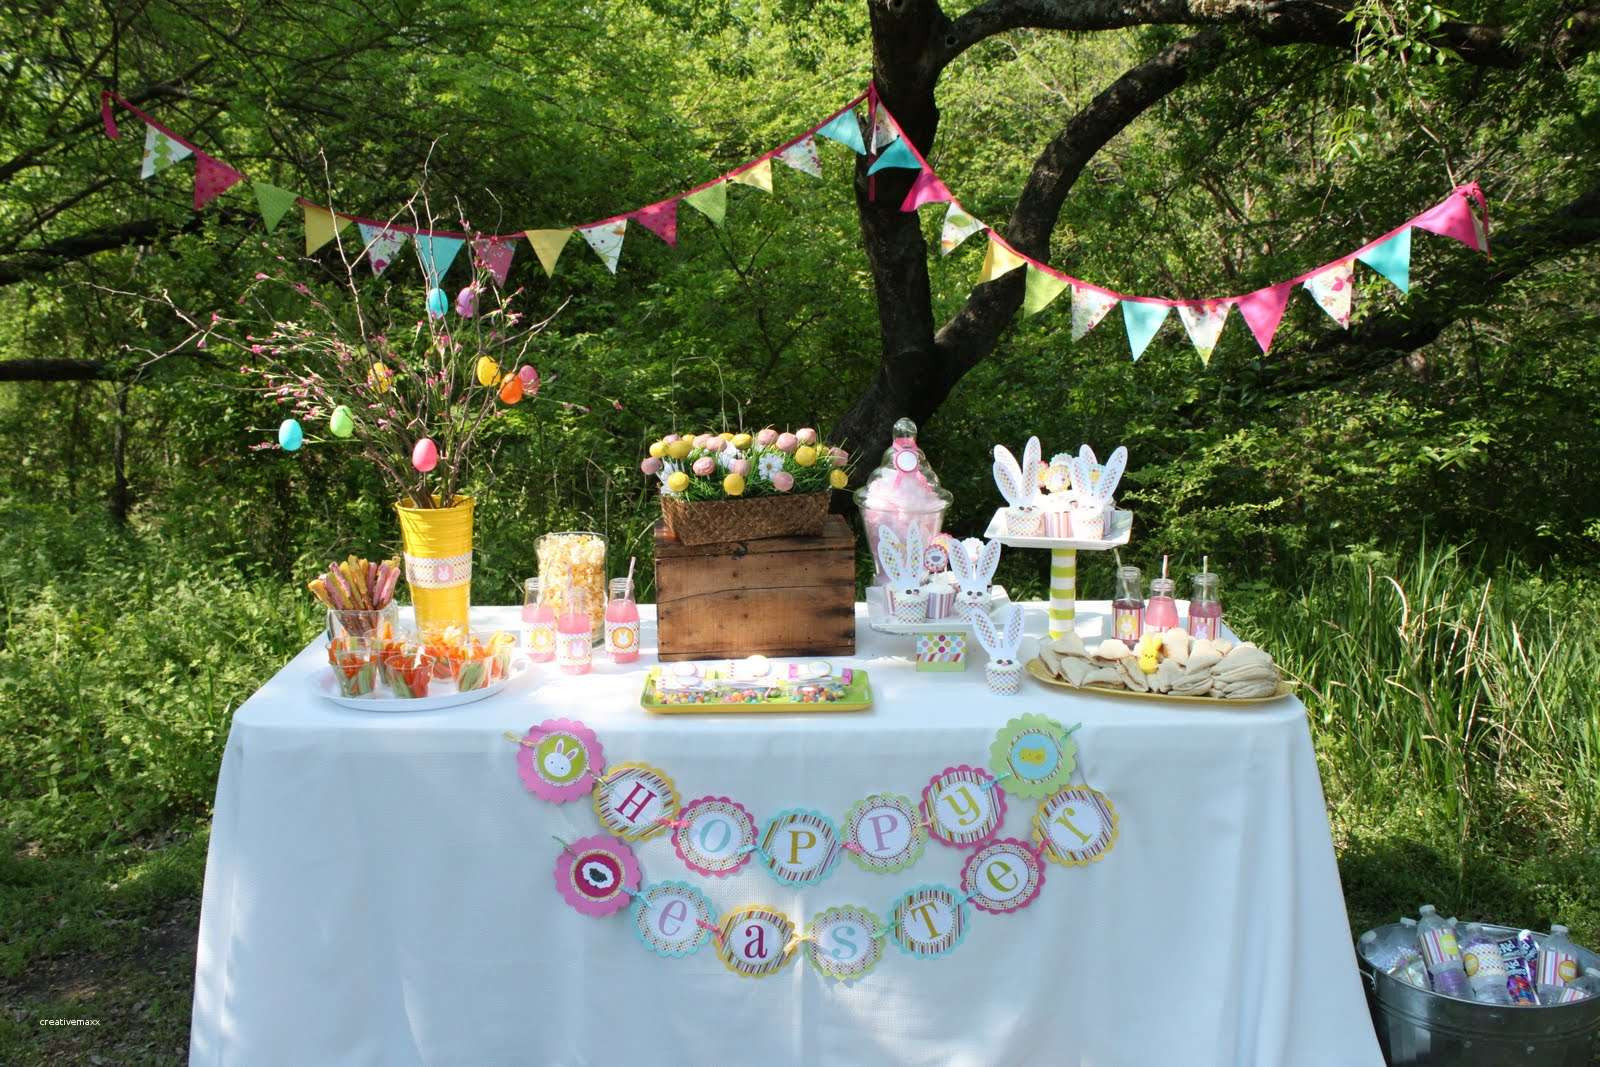 Best ideas about Spring Party Ideas For Adults . Save or Pin Easter party ideas for adults awesome easter egg hunt Now.